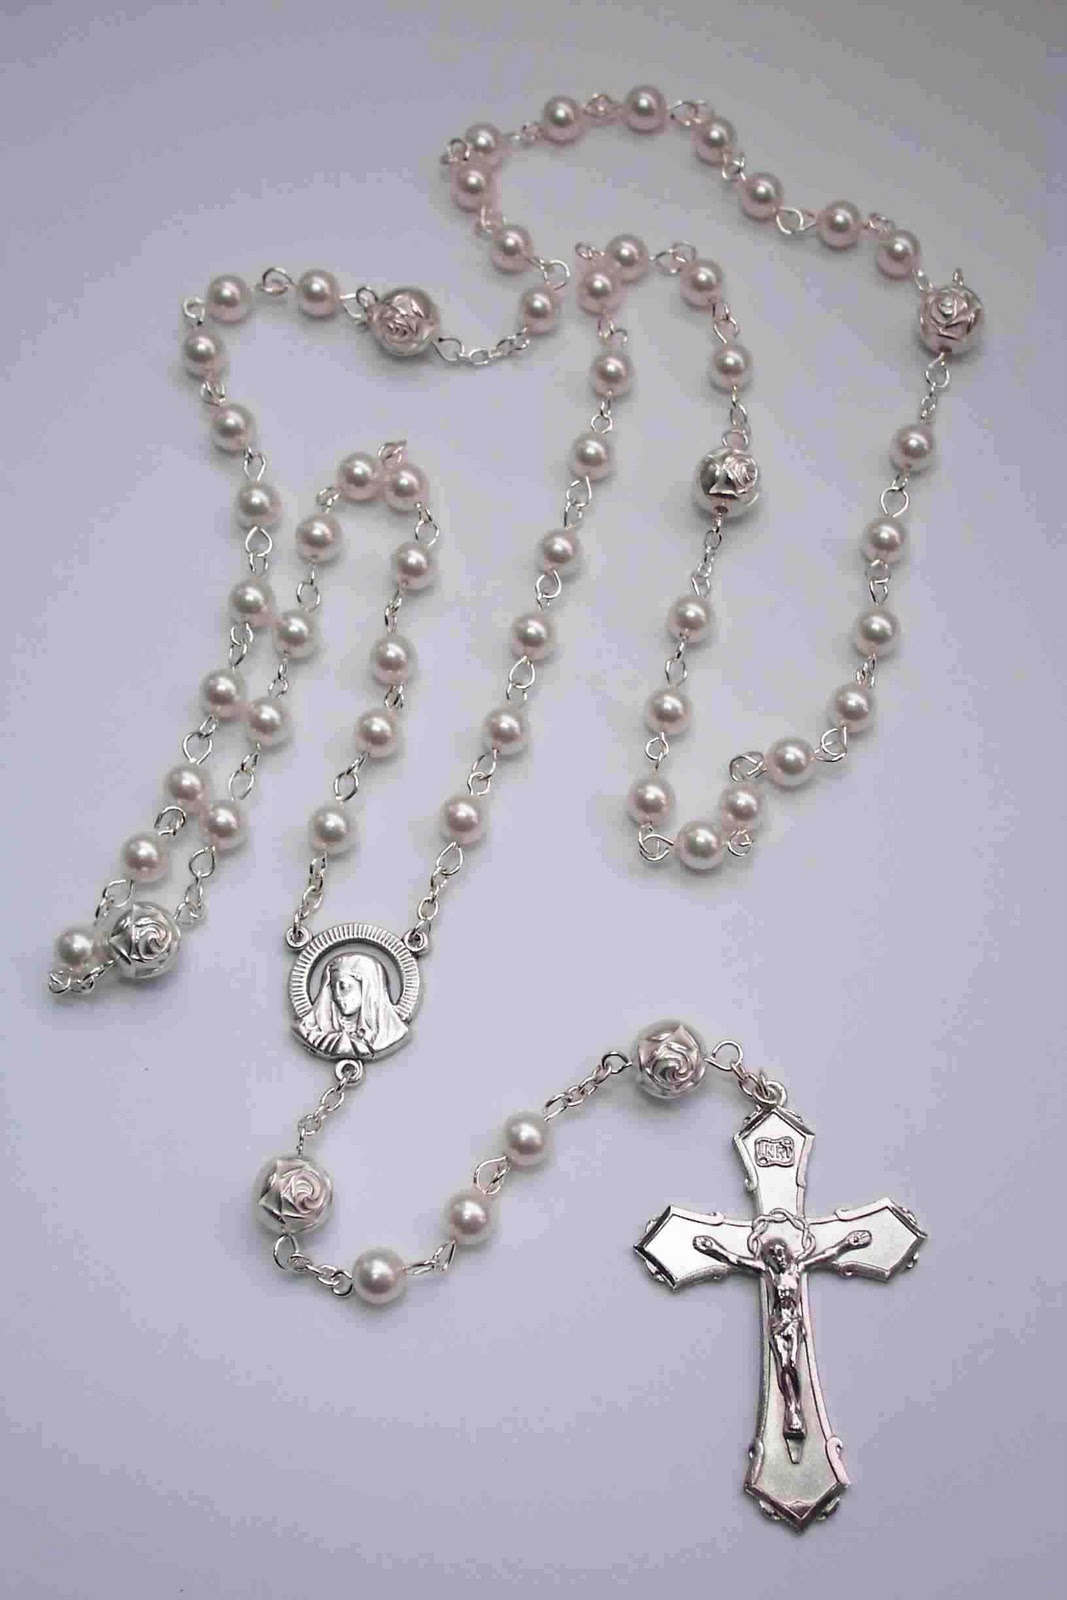 The Photo At Left Is Arranged Illustrate Order Of Beads As Used In Praying Rosary